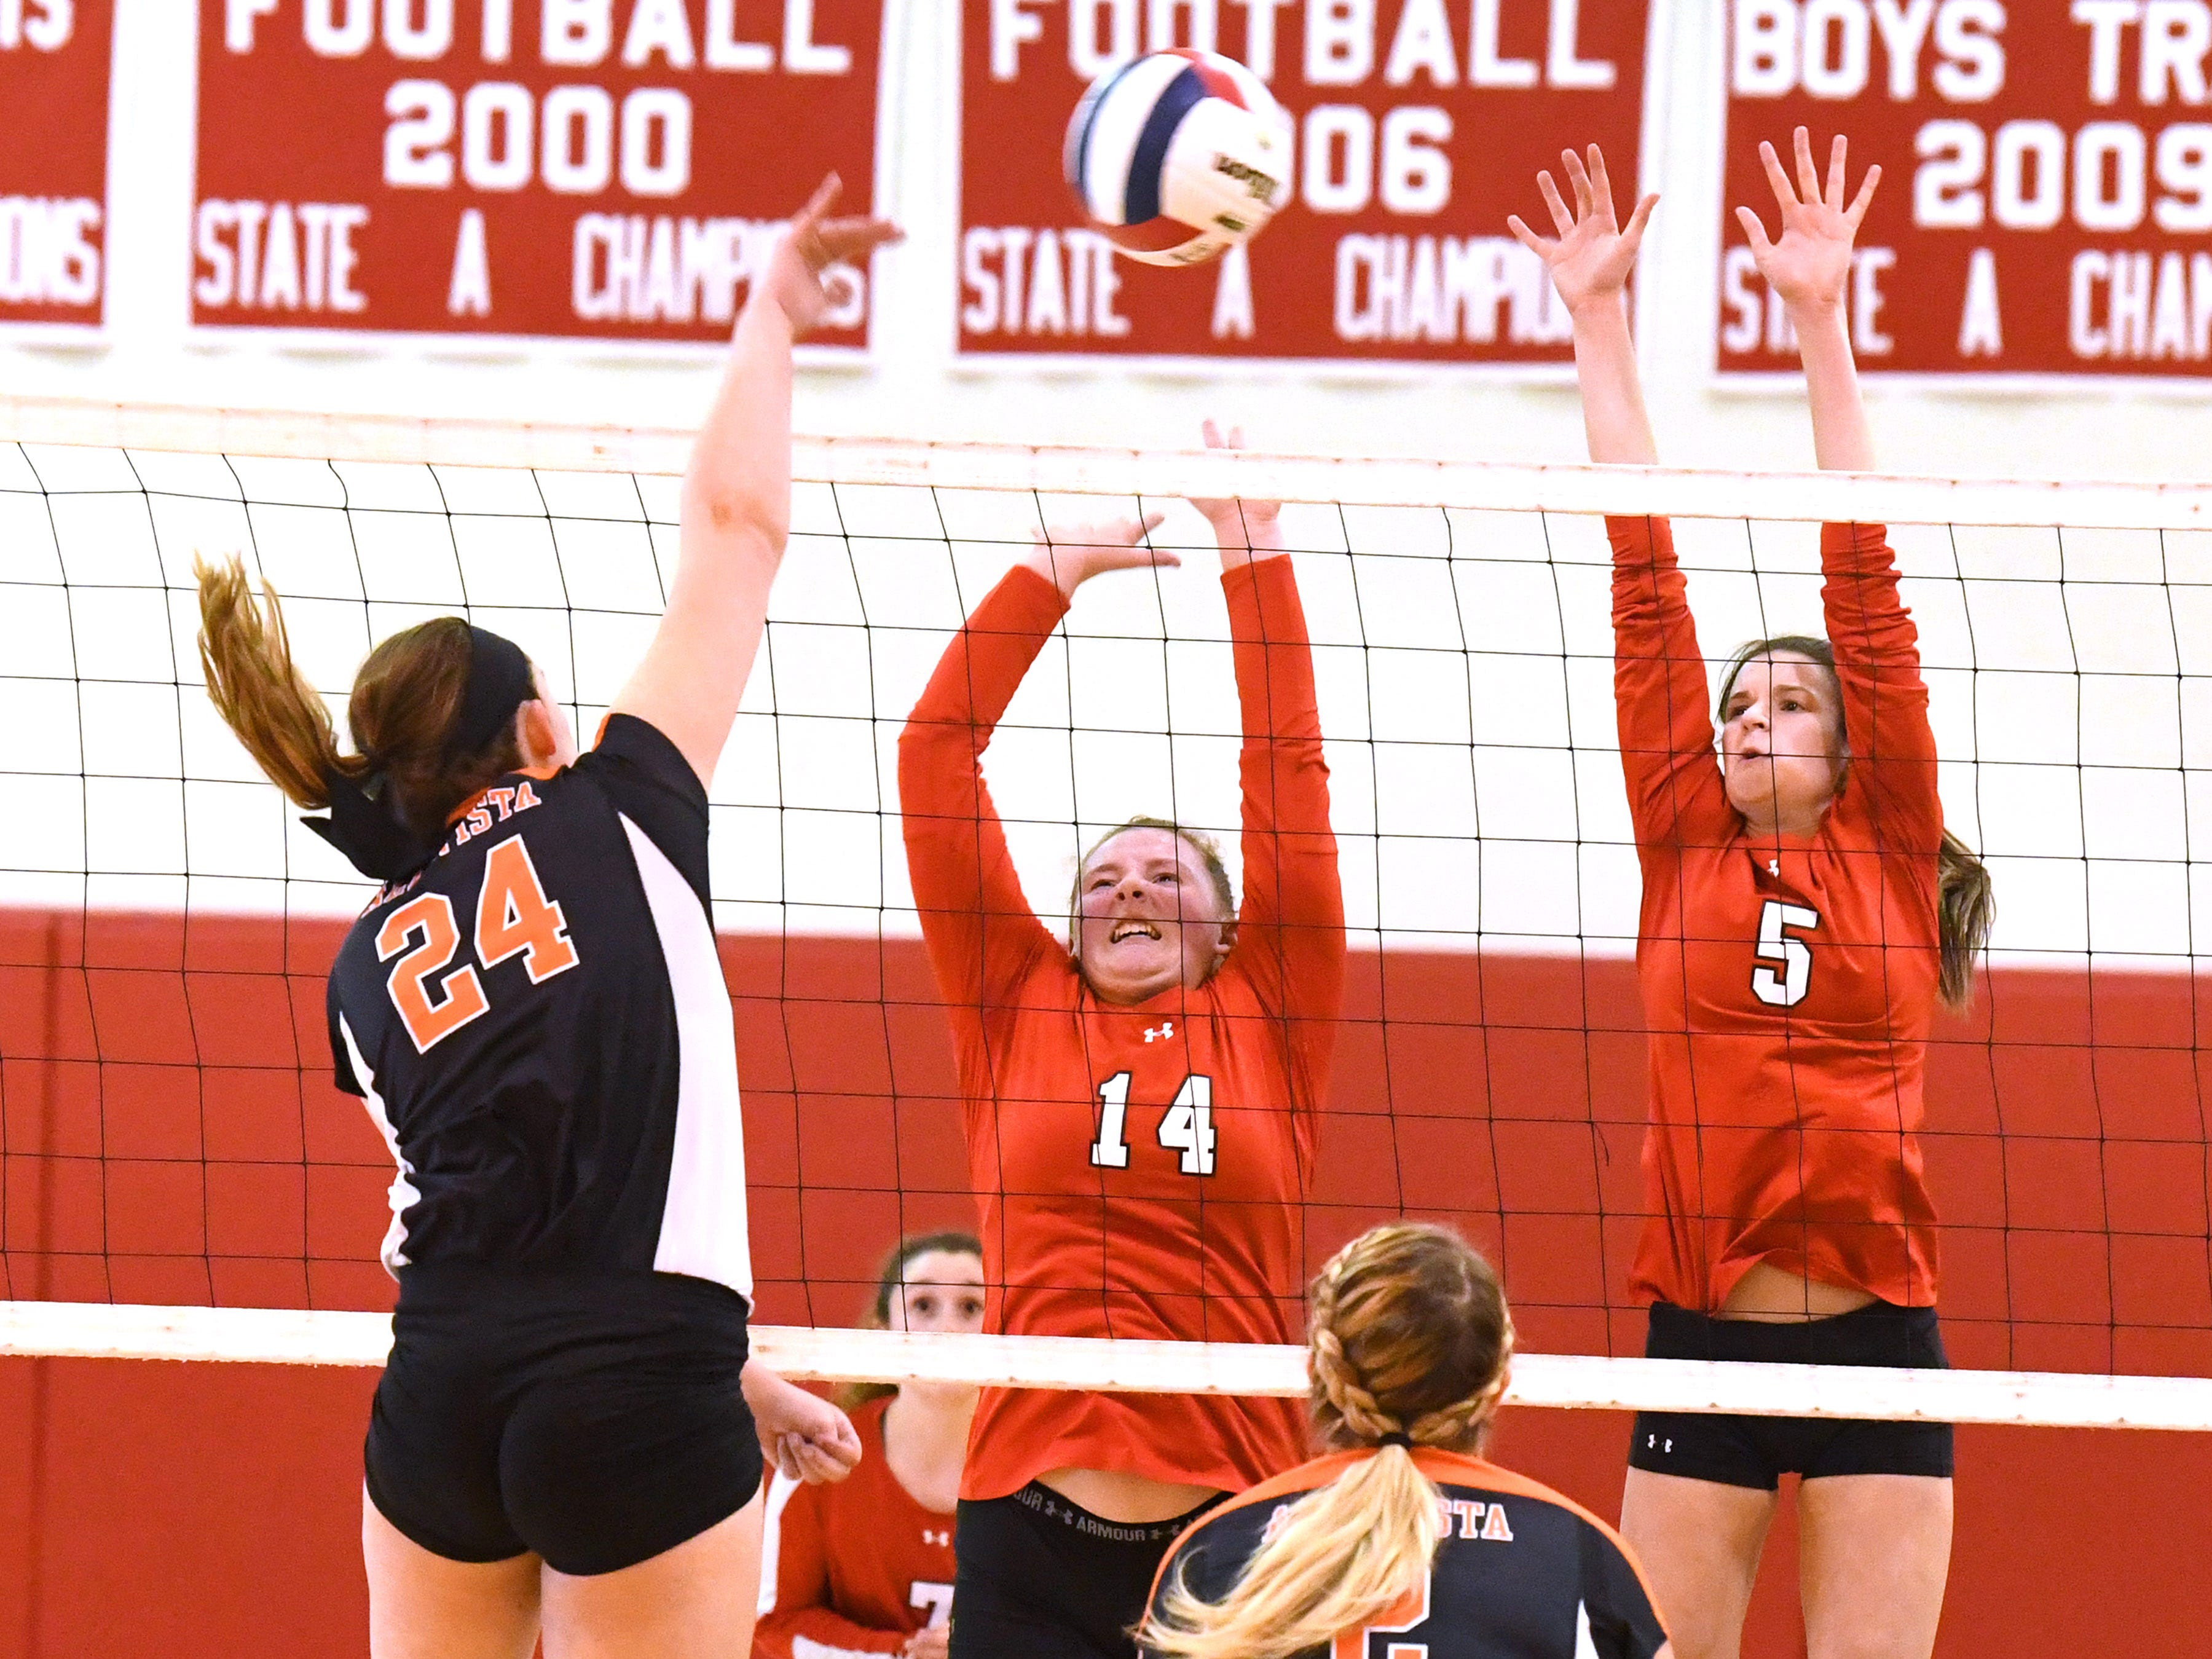 Riverheads' Dayton Moore and Abbey Eavers tries to block a hit by Altavista's Rachel Branning at the net during the Region 1B volleyball championship played in Greenville on Wednesday, Nov. 7, 2018.